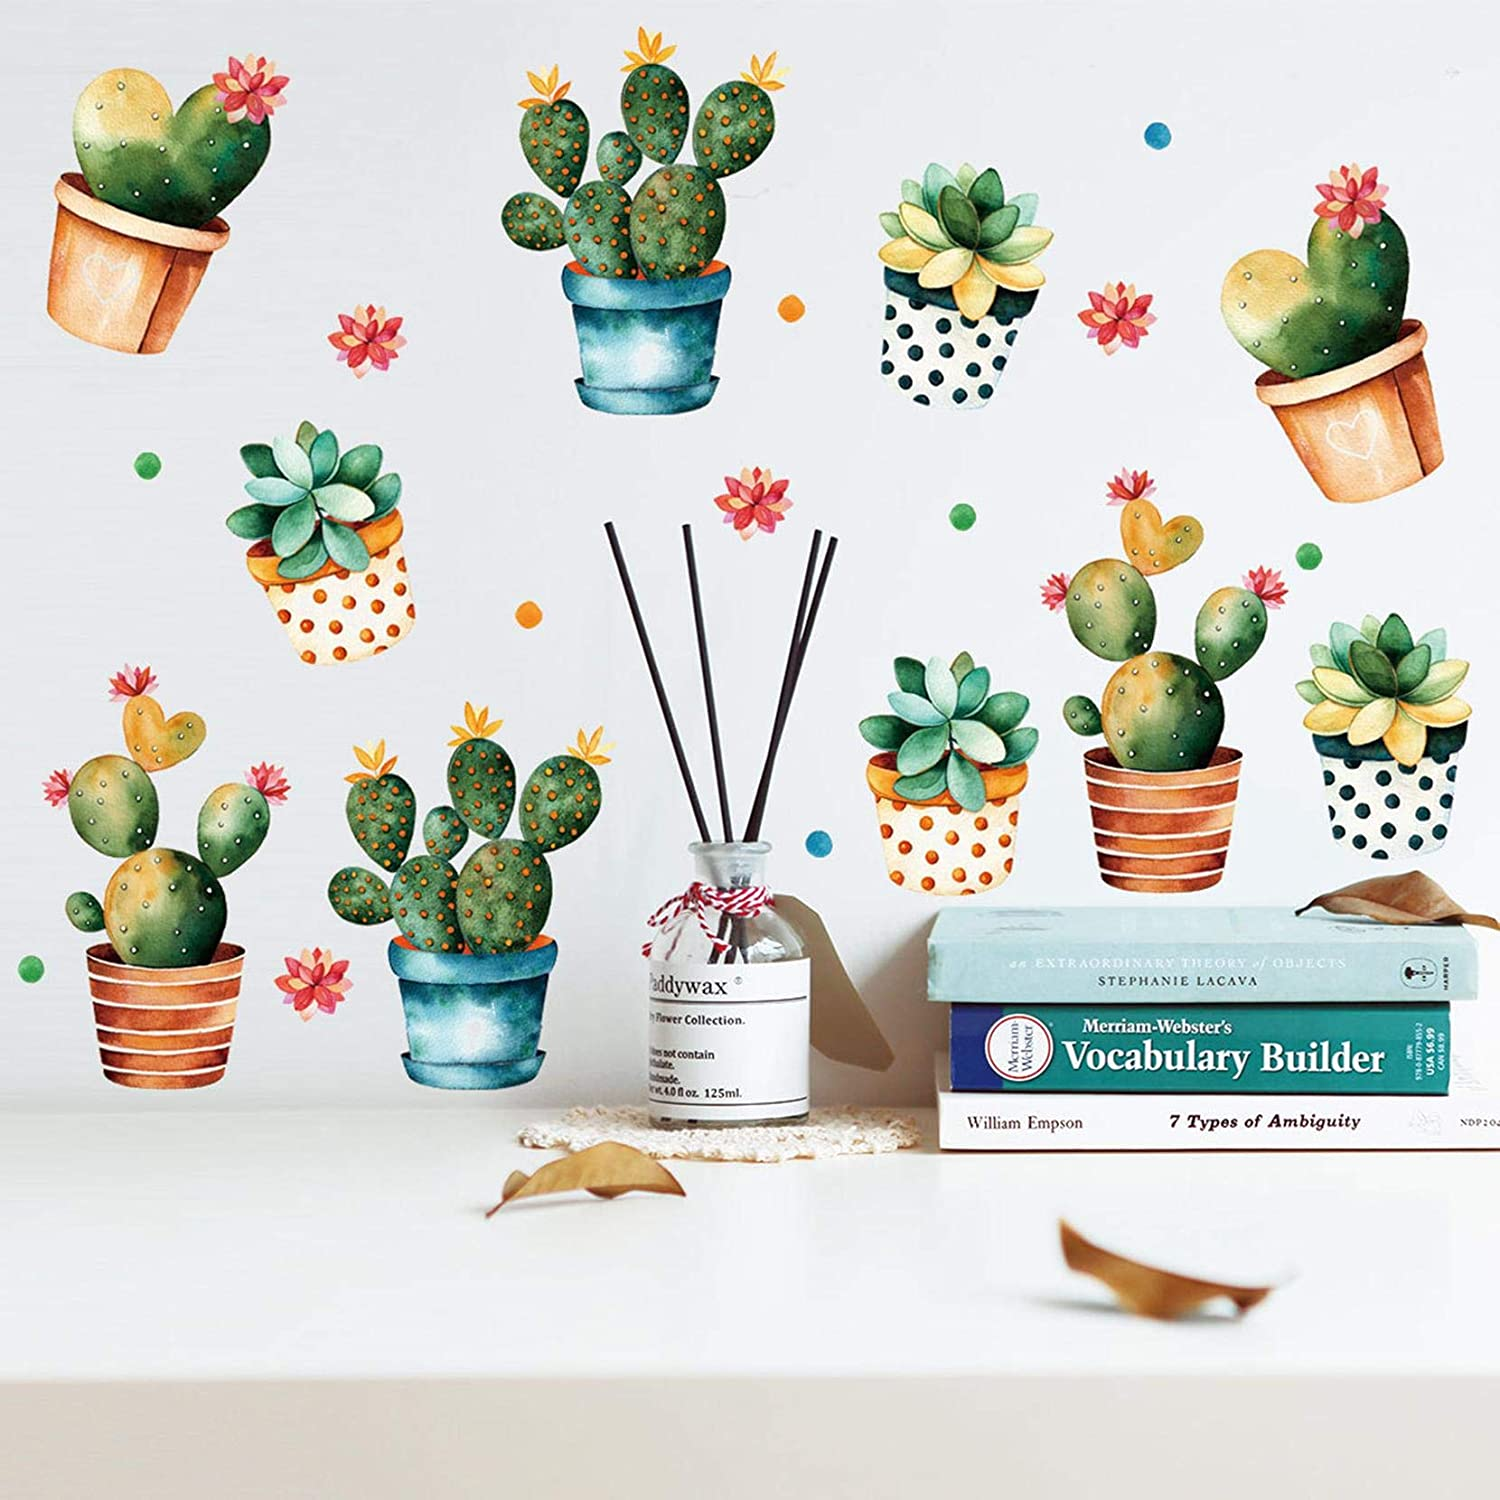 MOLANCIA 16 Pcs Cactus Succulent Wall Decal, Green Potted Plants Wall Stickers,Tropical Bonsai Wall Art Mural, Nature Vinyl Sticker,Removable Waterproof Wall Decor for Kids Bedroom Kitchen Living Room